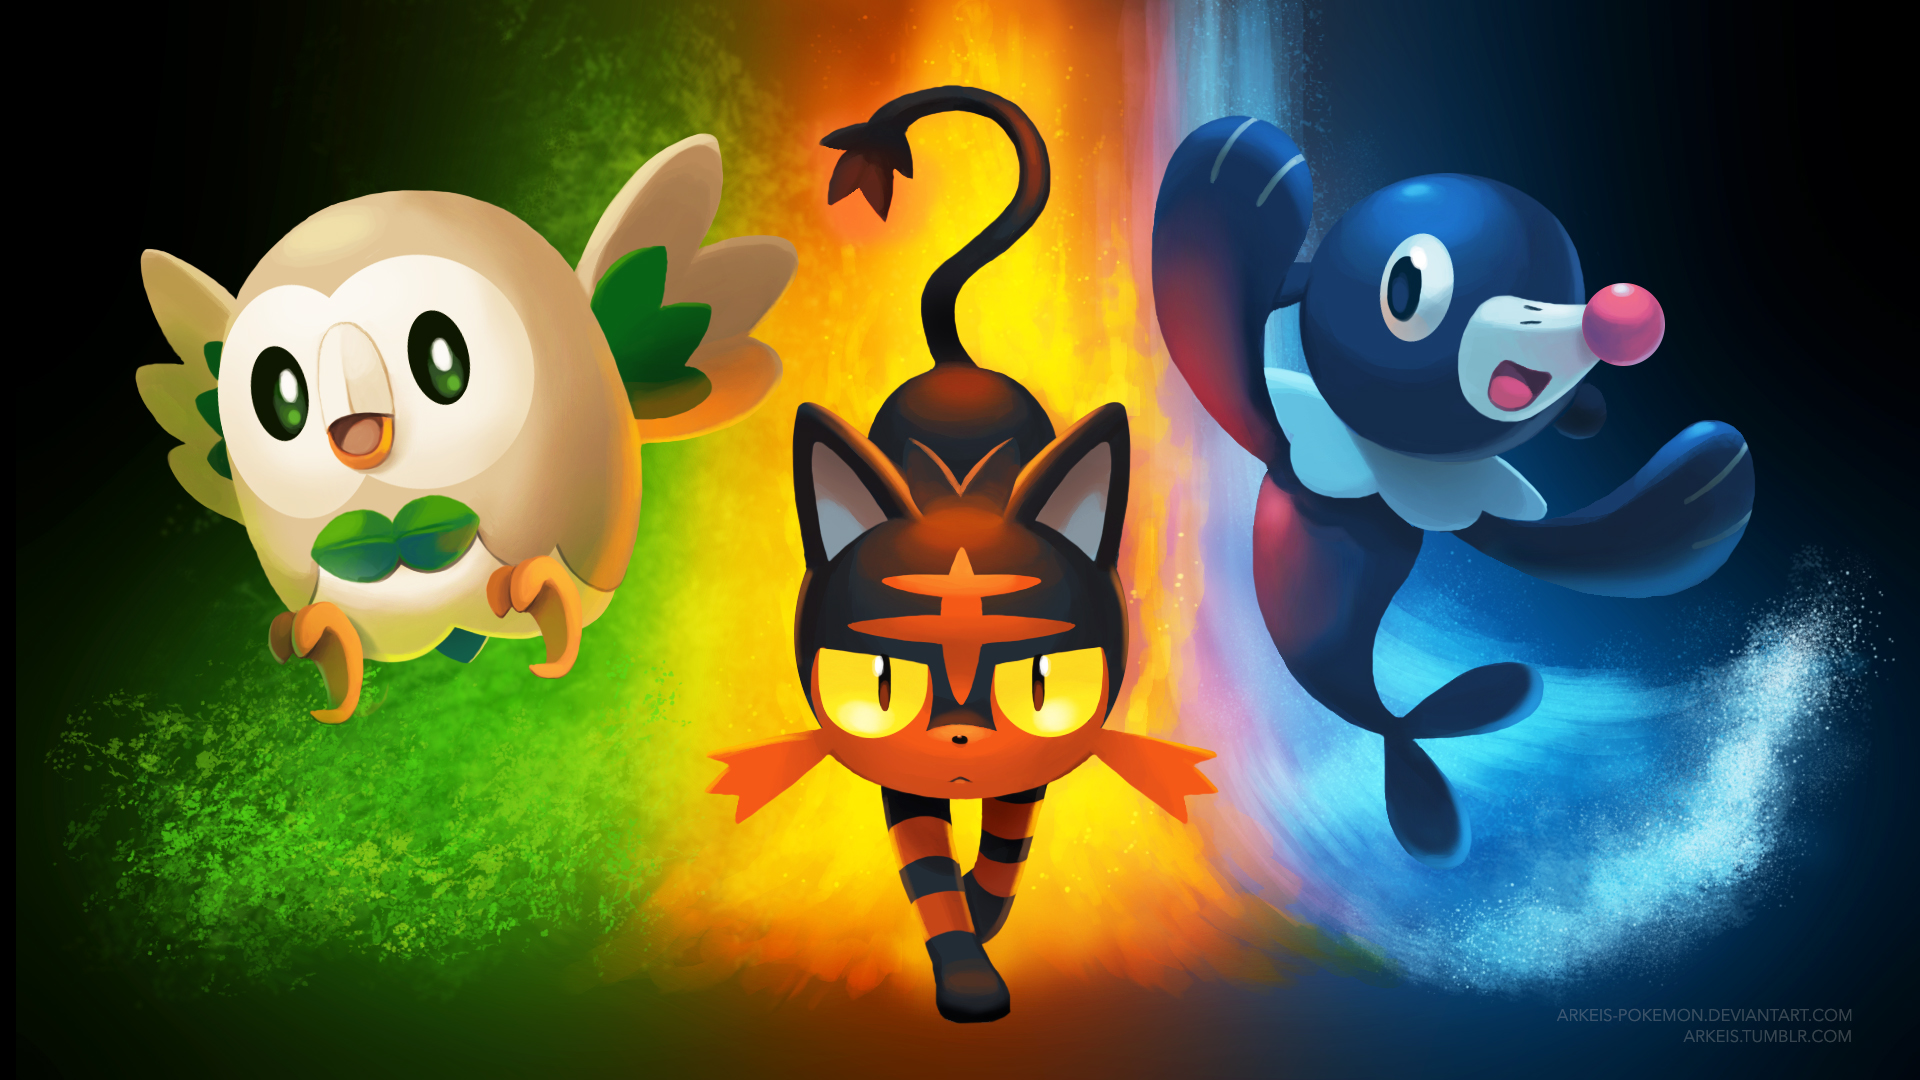 Wallpaper Pokemon Sun Moon Starters By Arkeis Pokemon On Deviantart